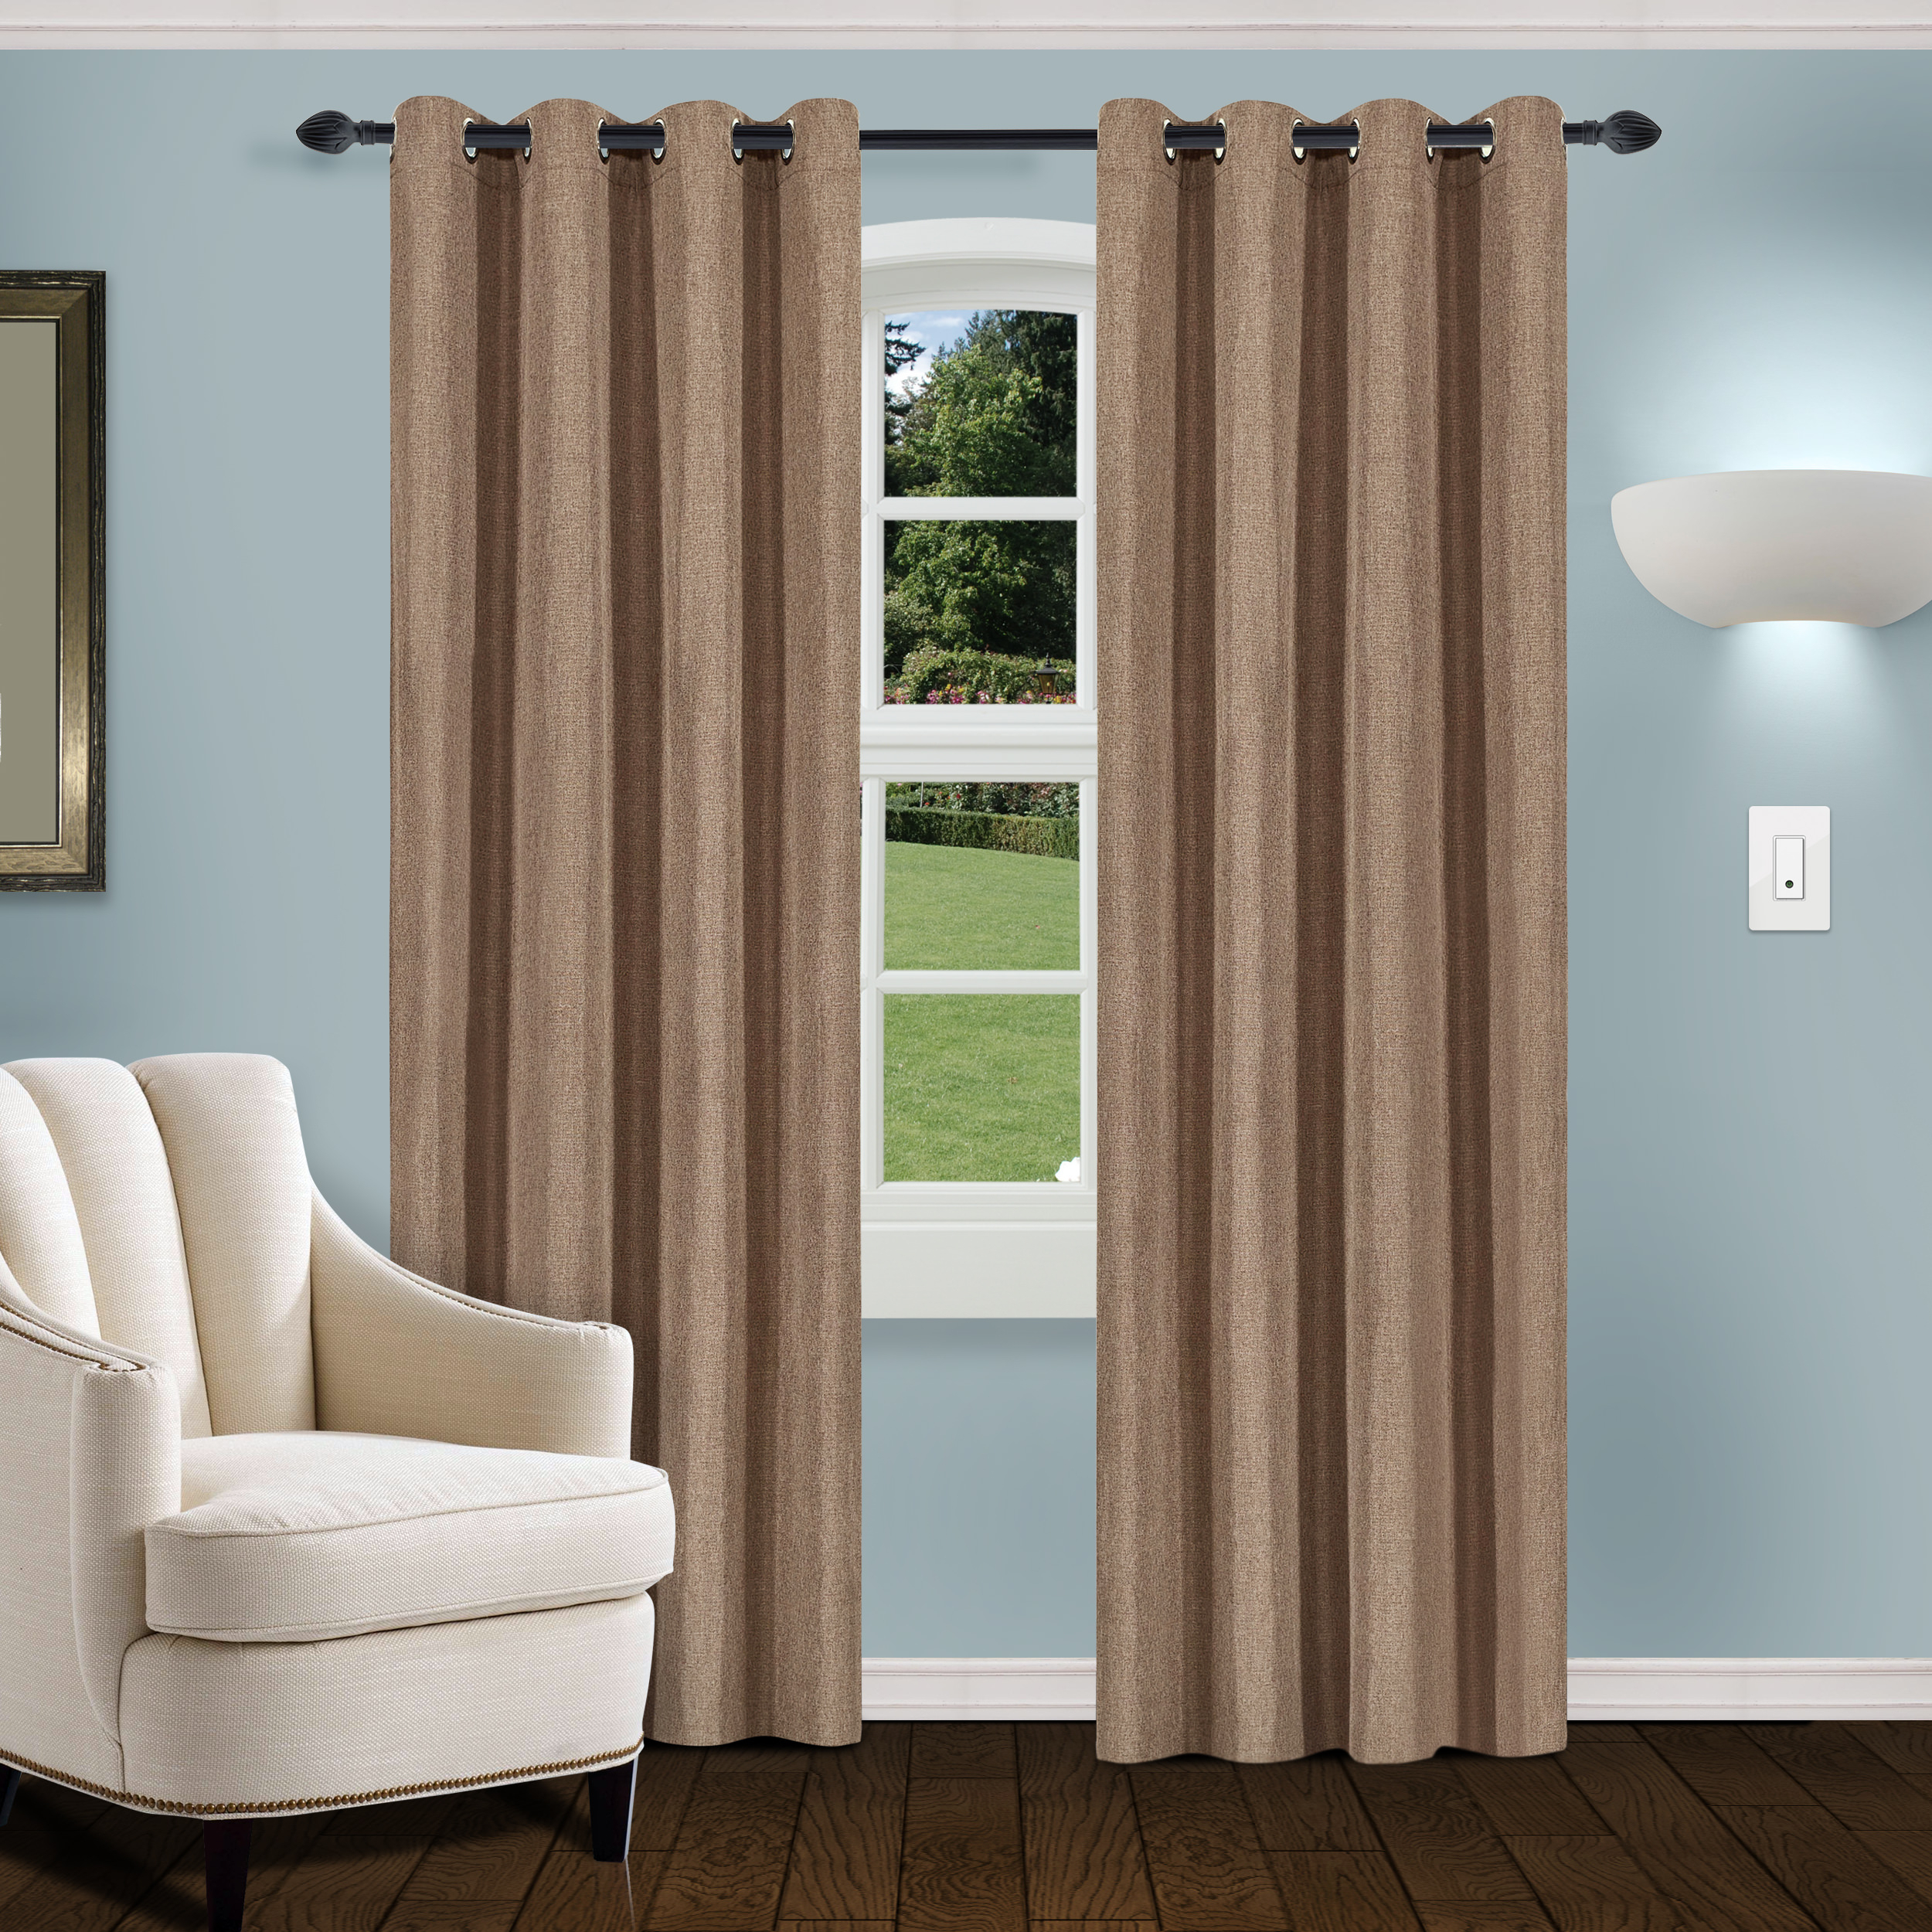 Superior Linen Textured Blackout Curtain Set Of 2 With Grommet Top Header Intended For Superior Leaves Insulated Thermal Blackout Grommet Curtain Panel Pairs (View 14 of 30)